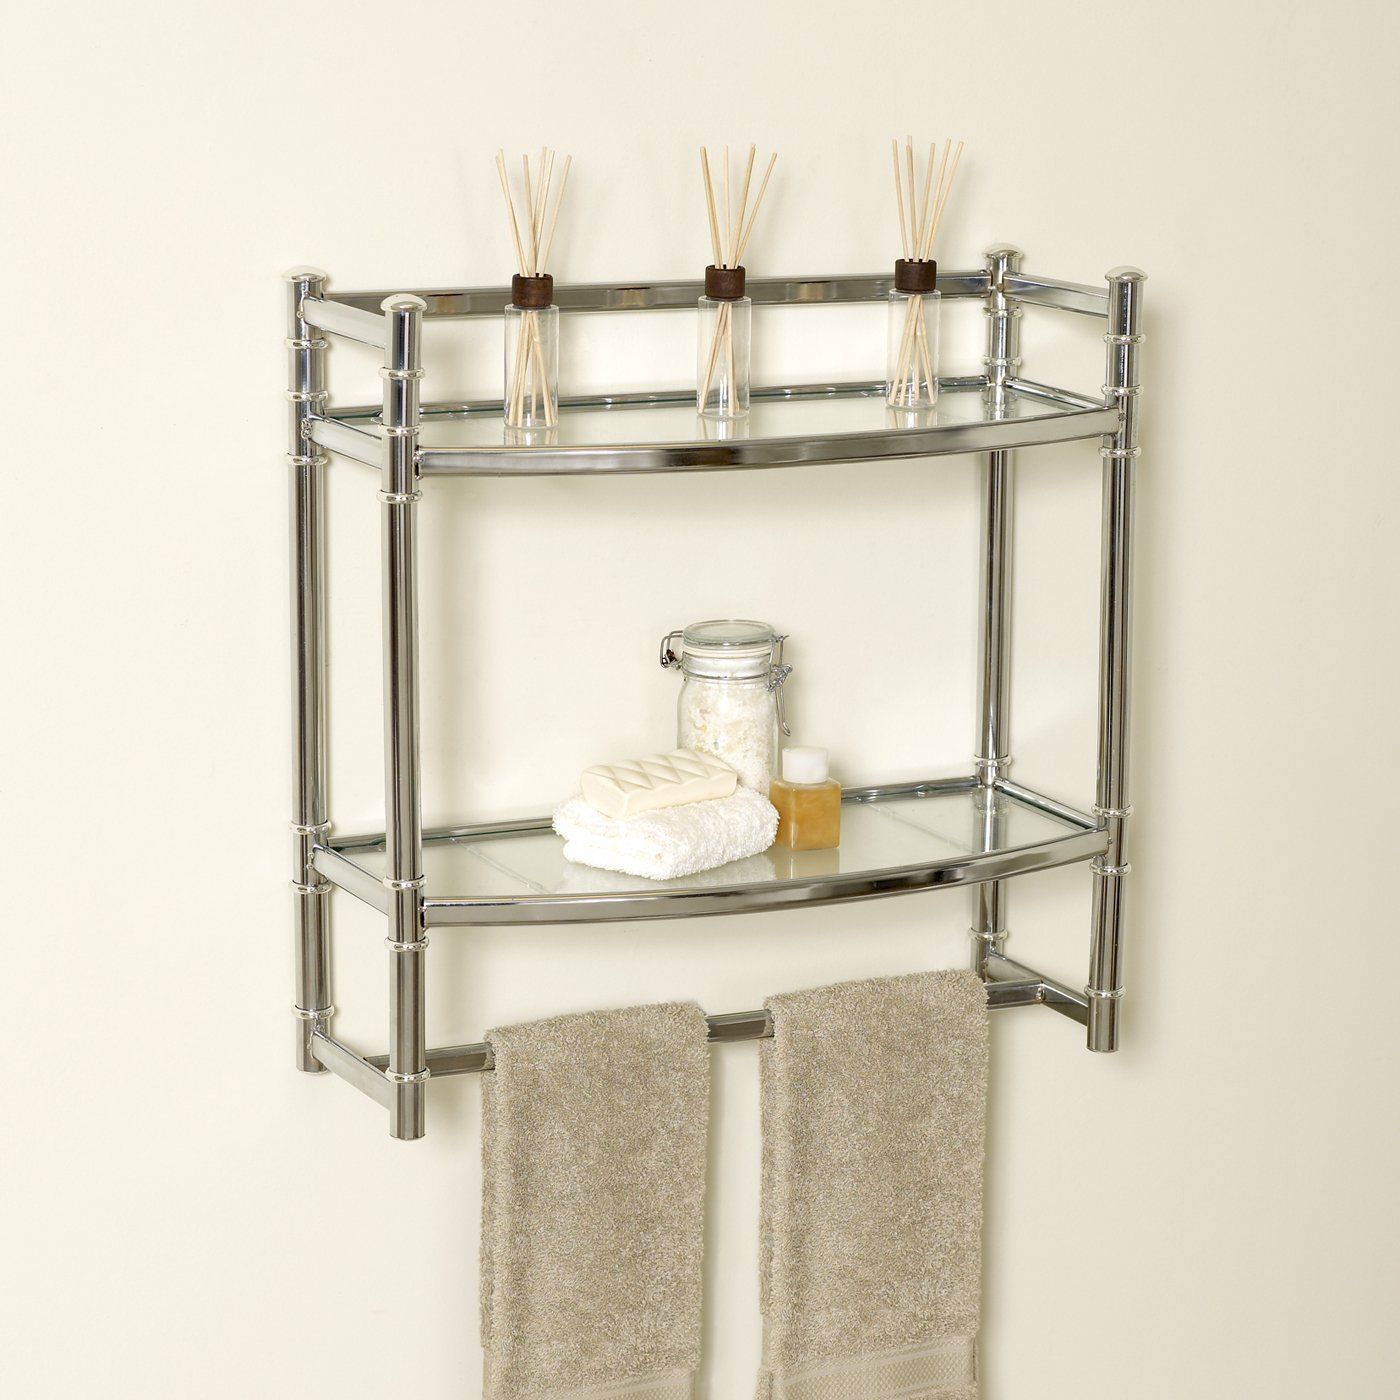 Bathroom Shelves Product Zenith Products 9012SS Bathroom